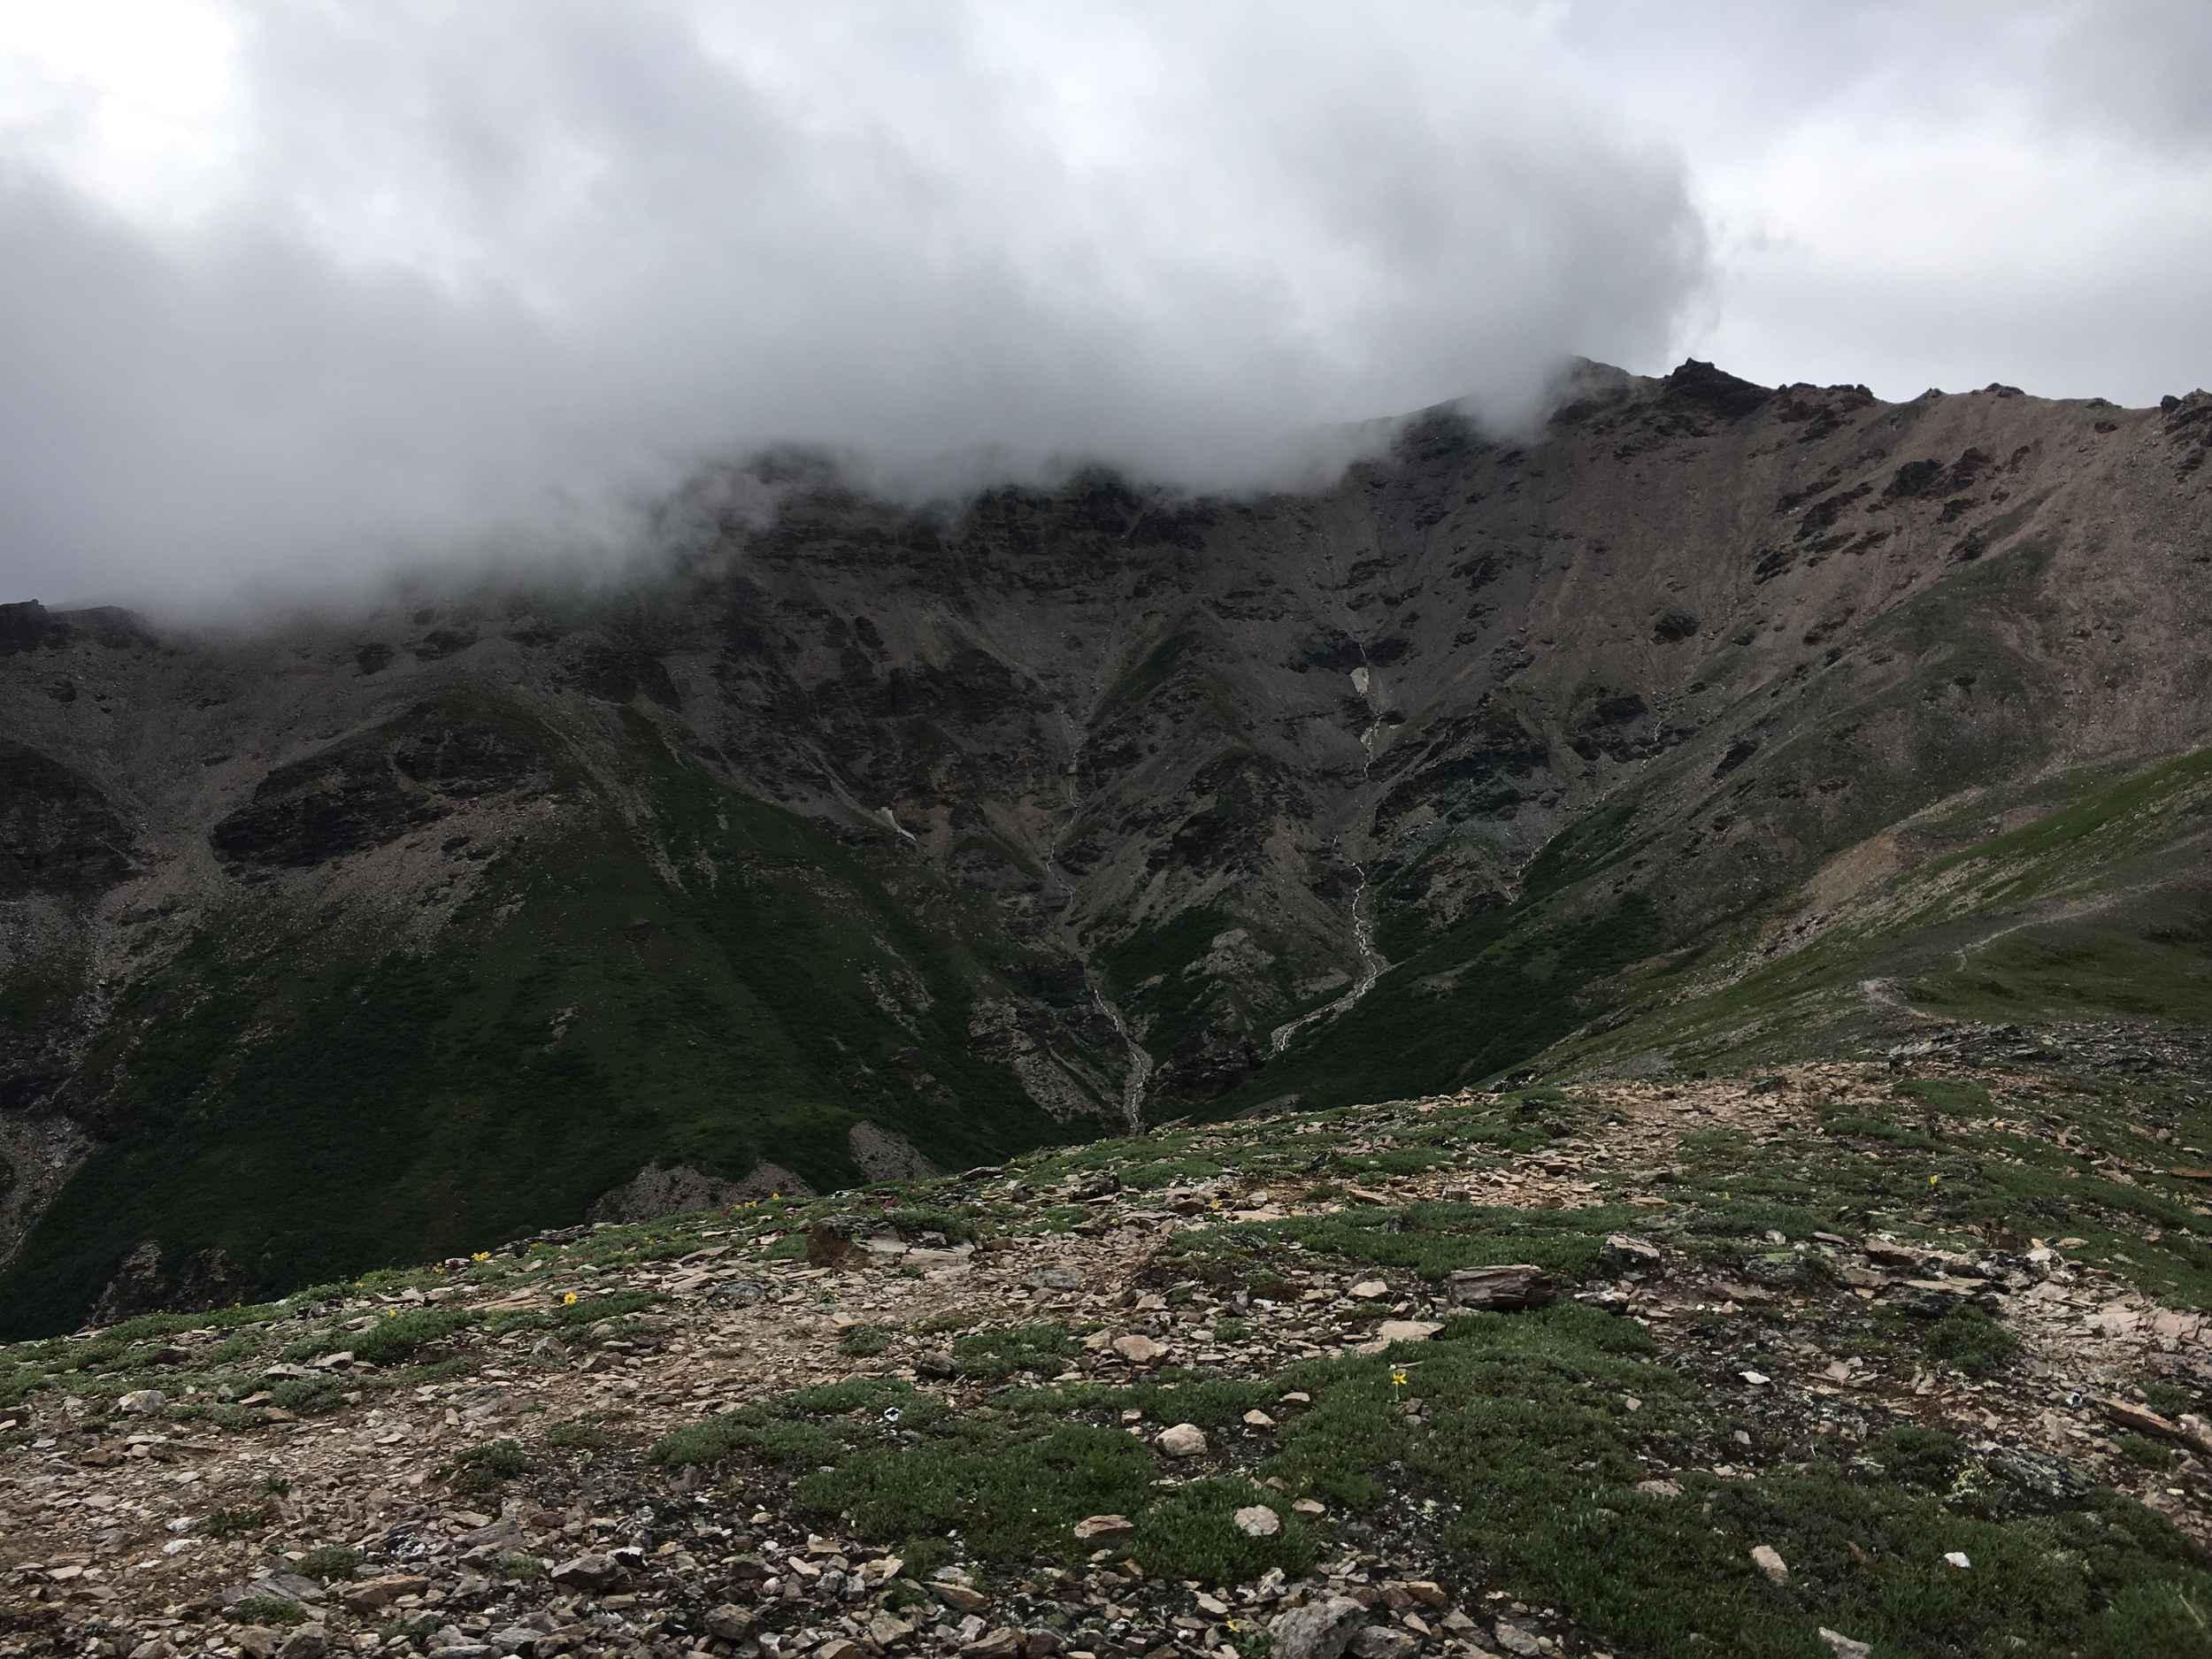 Clouds rolling over the adjacent ridge